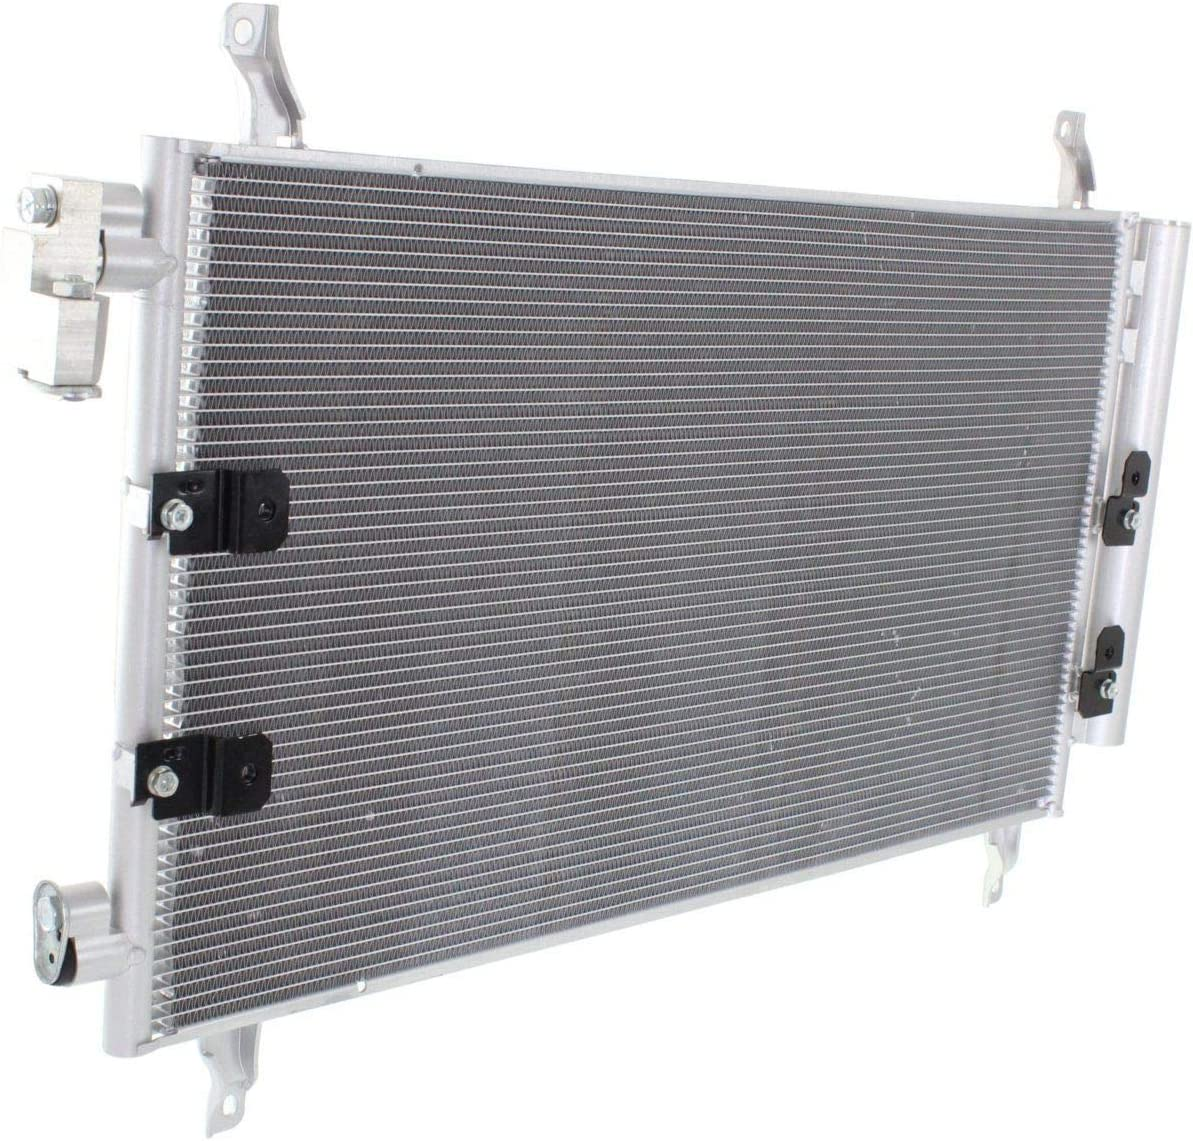 New AC Condenser For 2012-2015 Chevrolet Camaro ZL1 Models Coupe//Covertible GM3030298 22879422